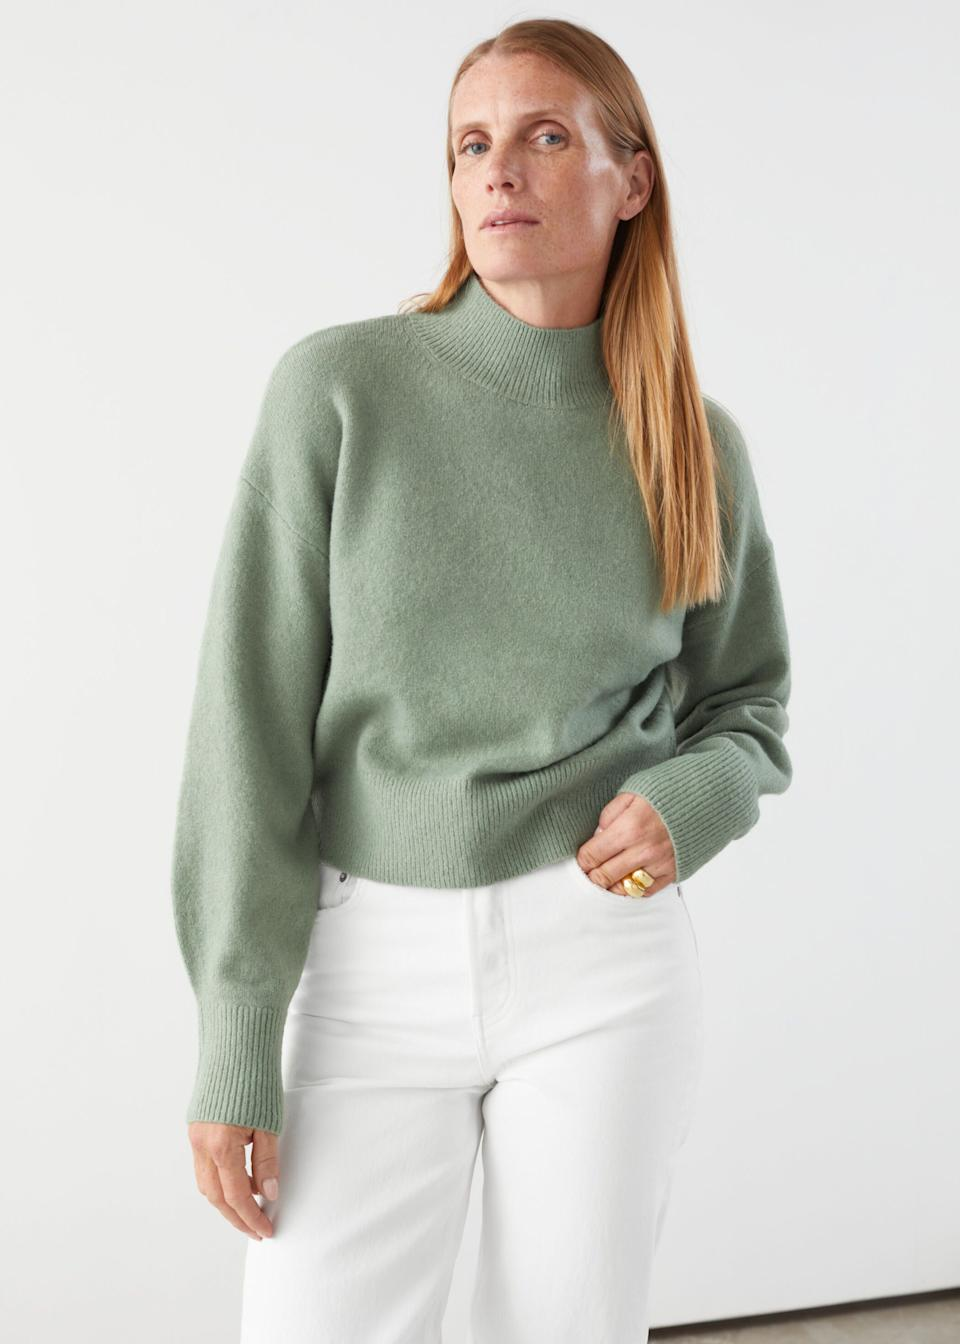 "<a href=""https://fave.co/33UAl2S"" target=""_blank"" rel=""noopener noreferrer"">This mock neck sweater</a> is available in sizes XS to L in 13 colors. Find it for $49 on <a href=""https://fave.co/33UAl2S"" target=""_blank"" rel=""noopener noreferrer"">& Other Stores</a>."